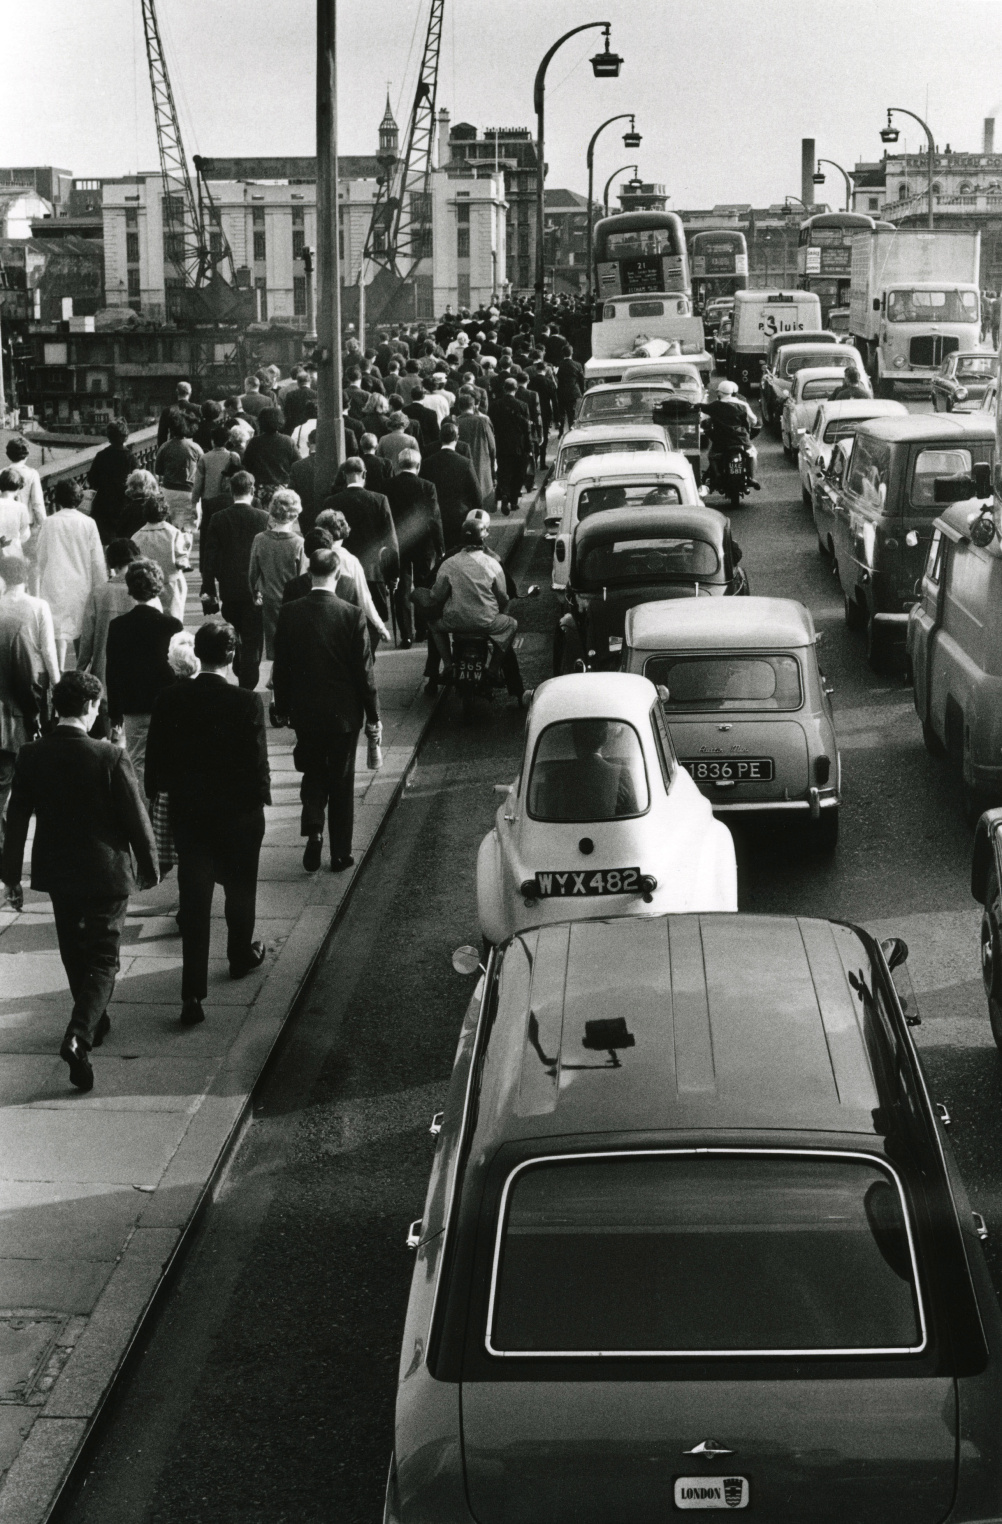 Roger Mayne - Waterloo Bridge during the morning rush hour